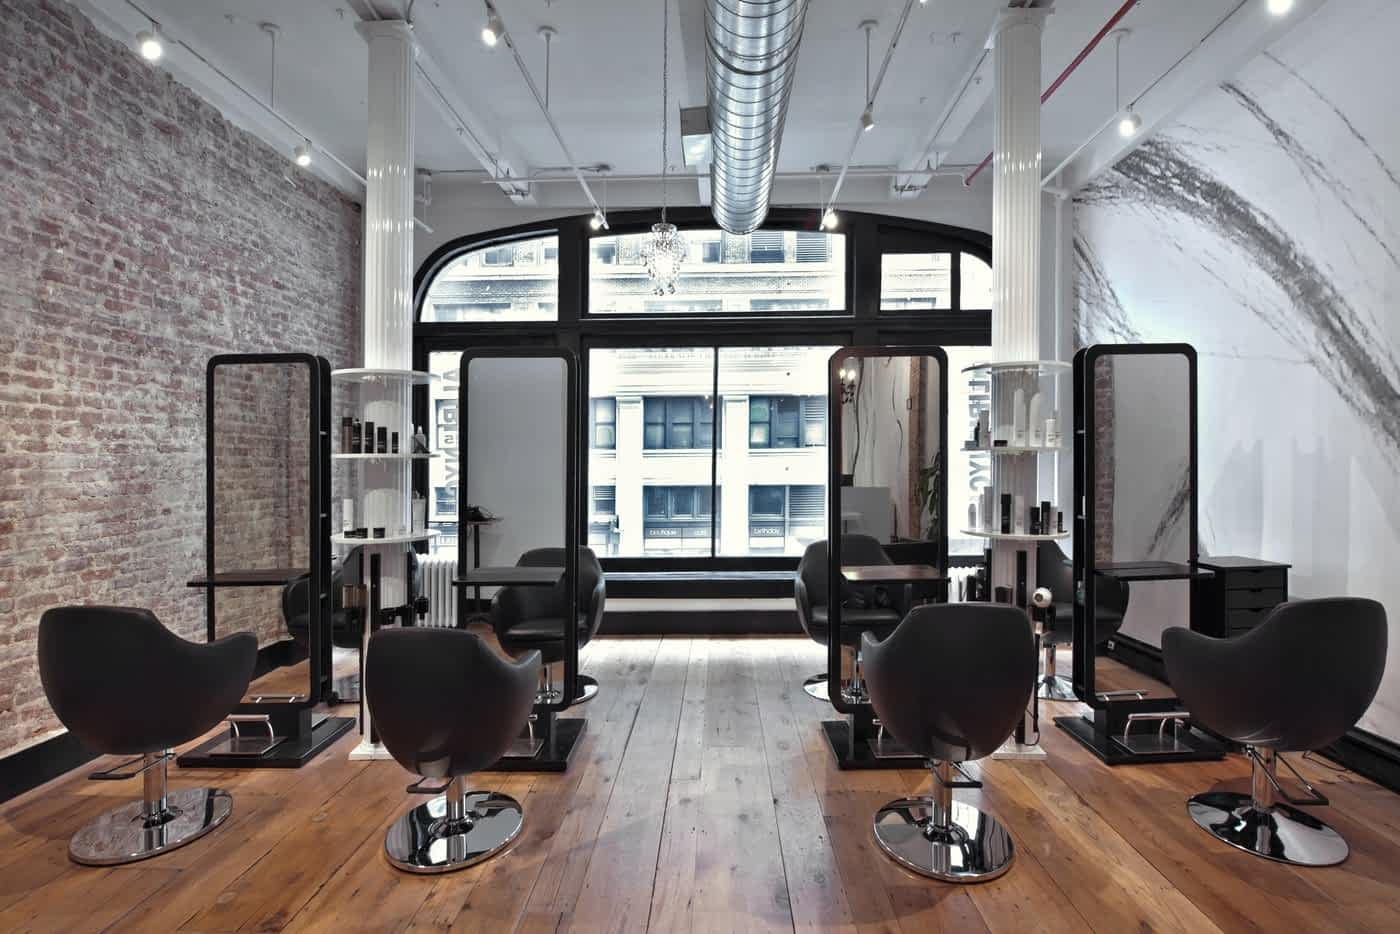 Styling stations salon mirrors zurich beauty for Salon furniture makeup station